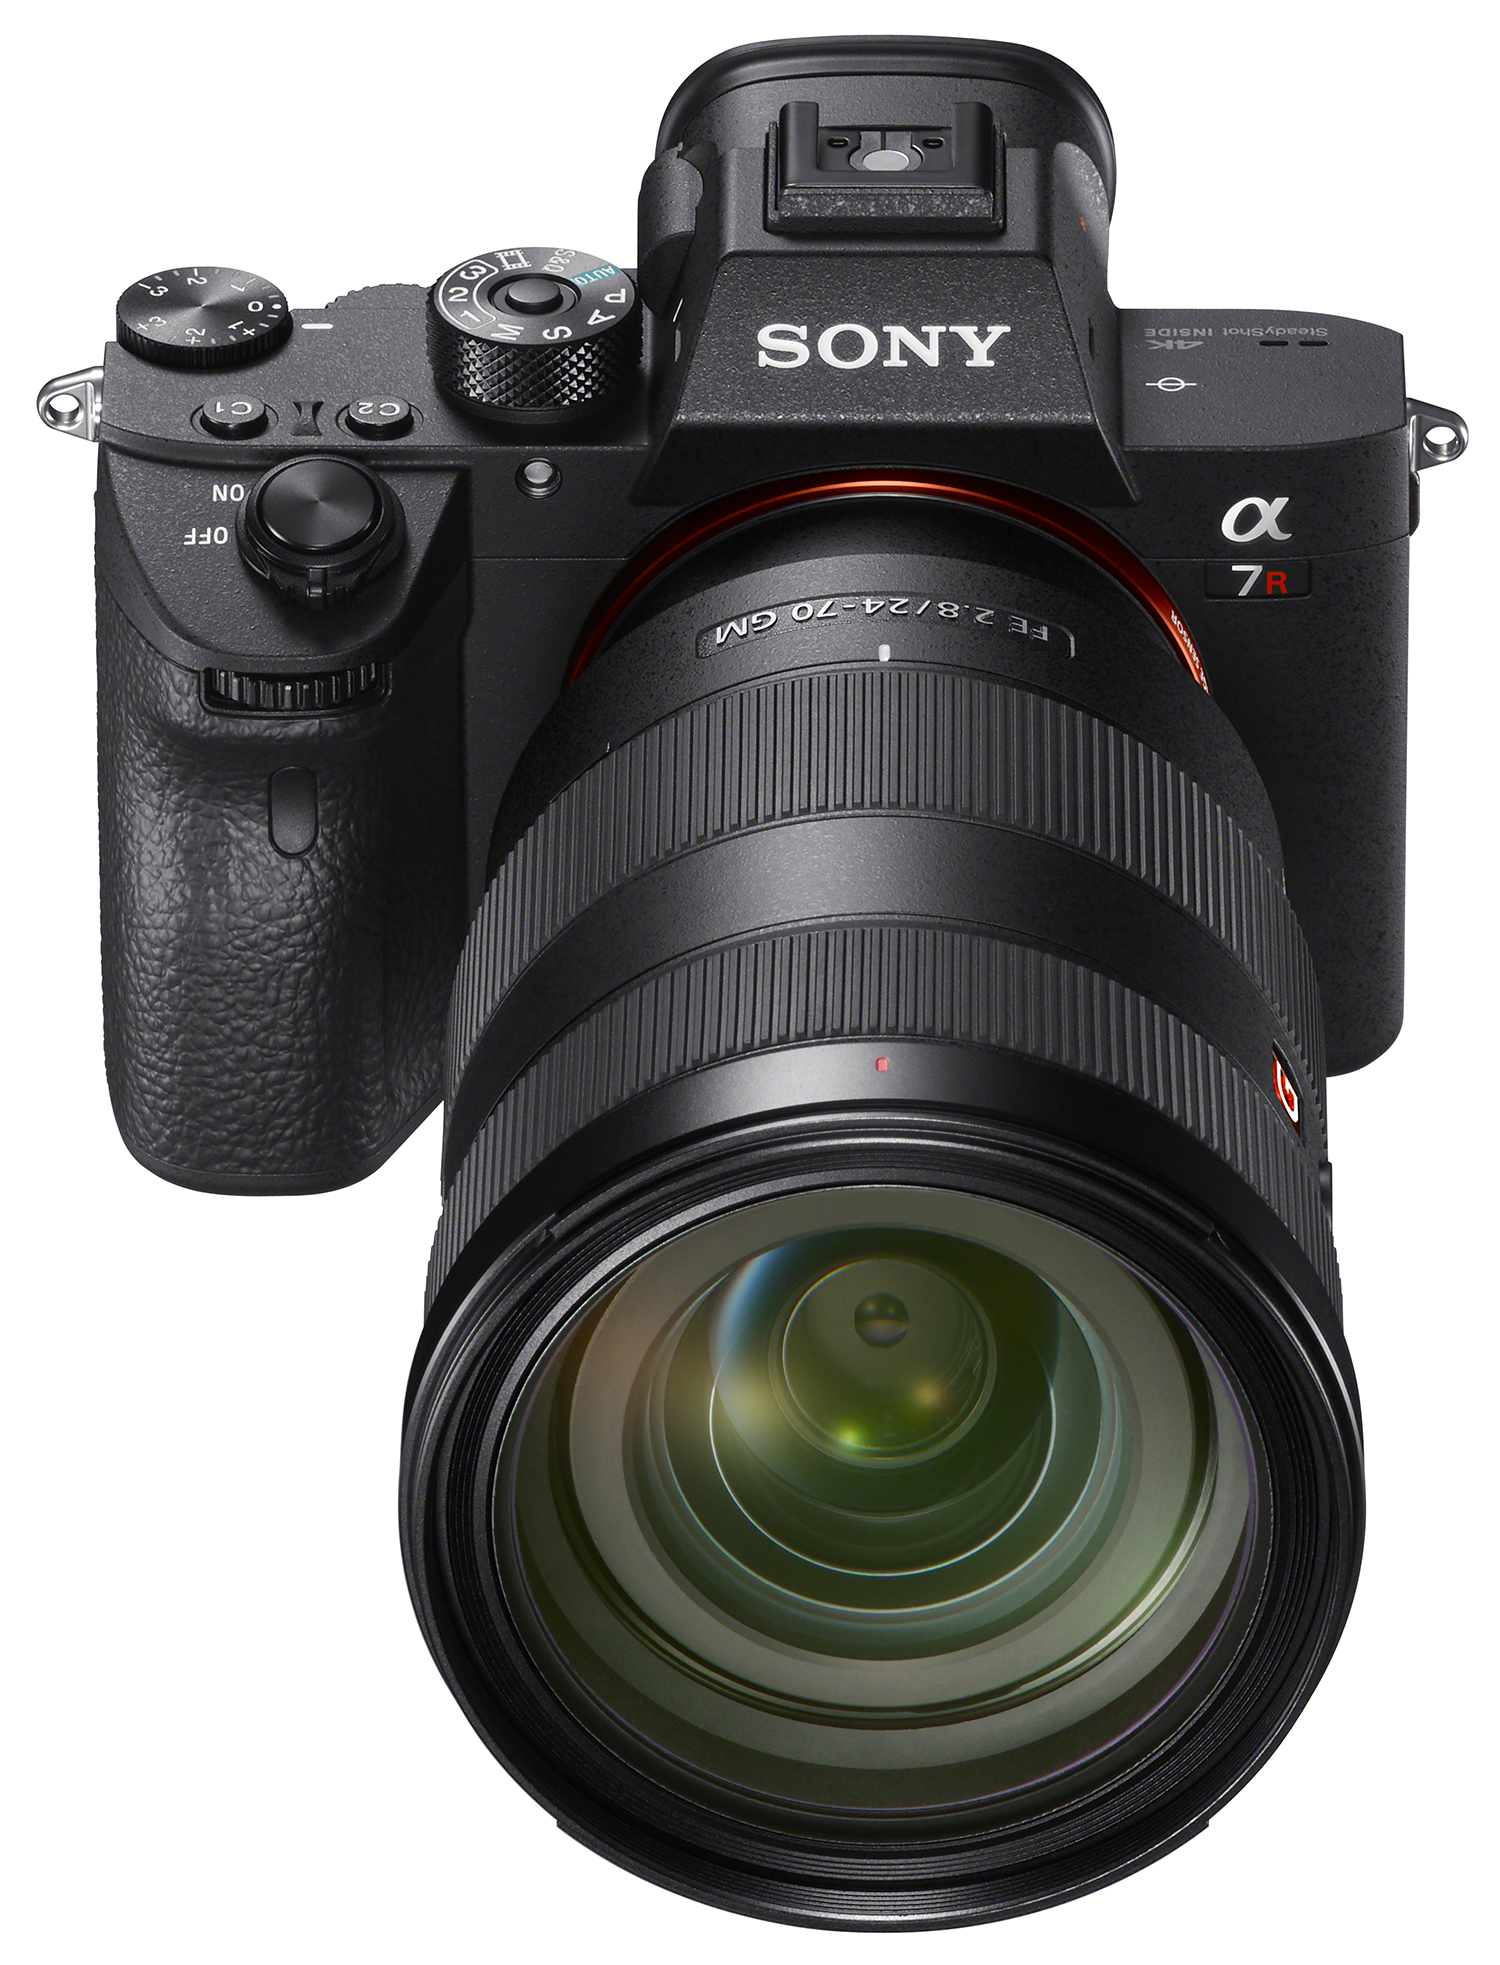 Sony a7R III TIPA Awards